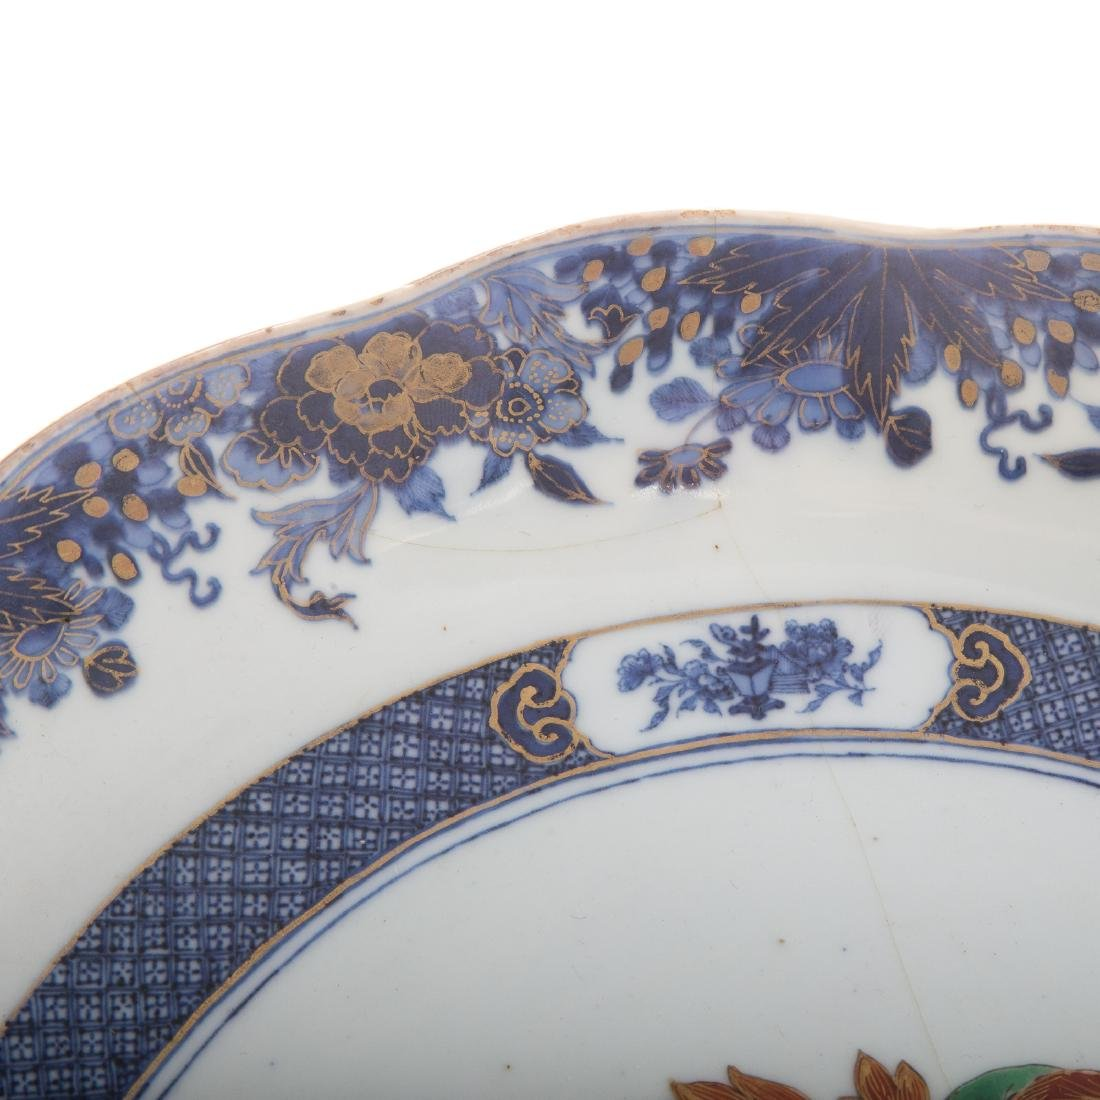 Chinese Export armorial bowl - 4